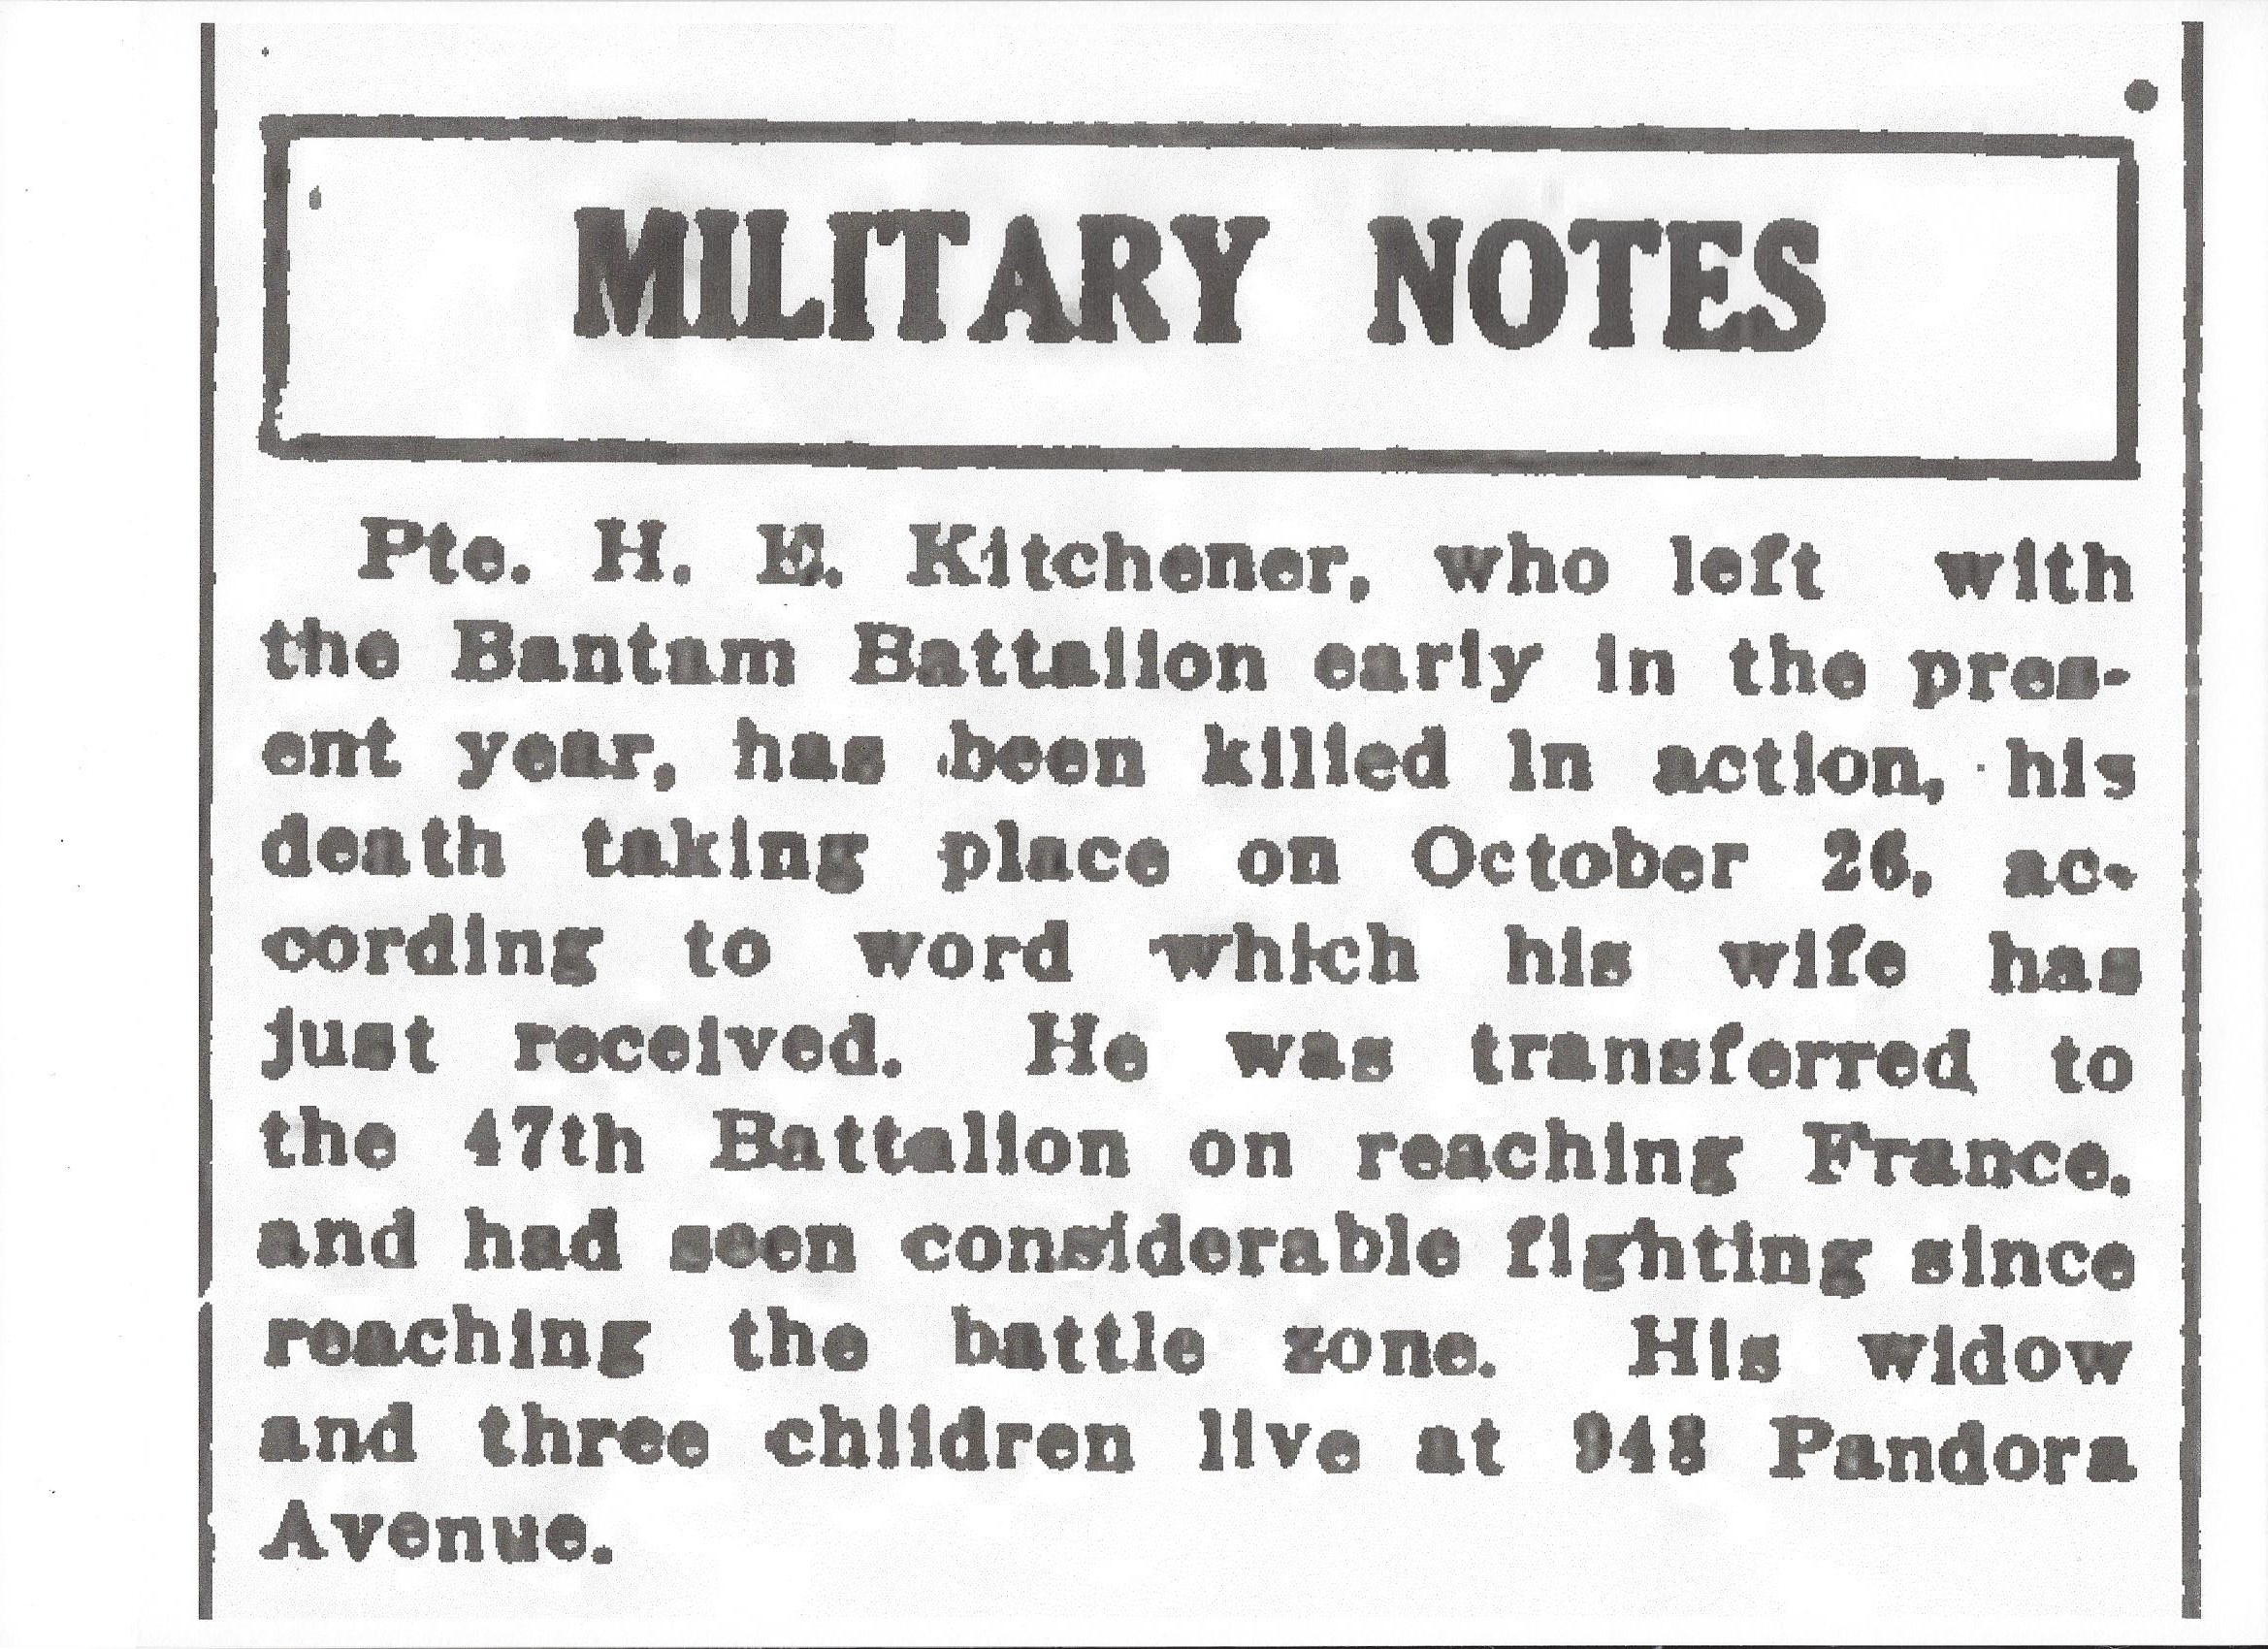 Newspaper Clipping– Newspaper clipping from the Daily Colonist of November 23, 1917. Image taken from web address of http://archive.org/stream/dailycolonist59y300uvic#page/n0/mode/1up